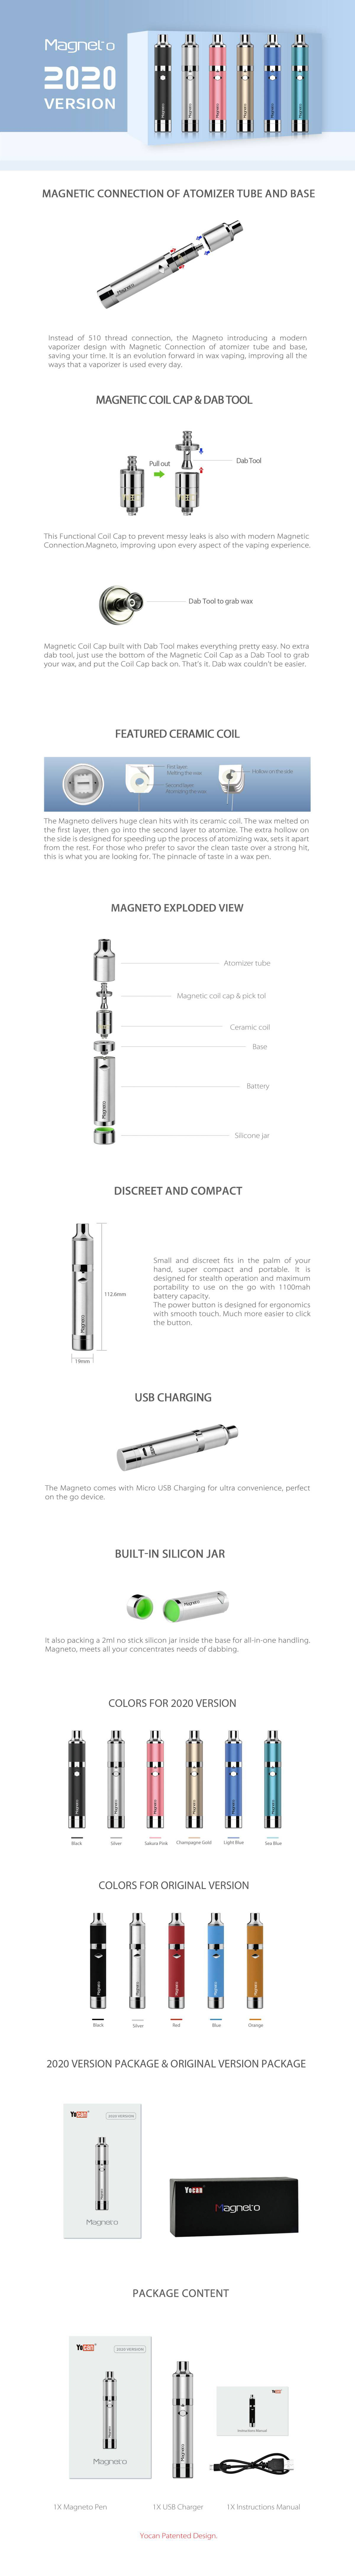 more on Yocan Magneto Vaporizer For Wax 1